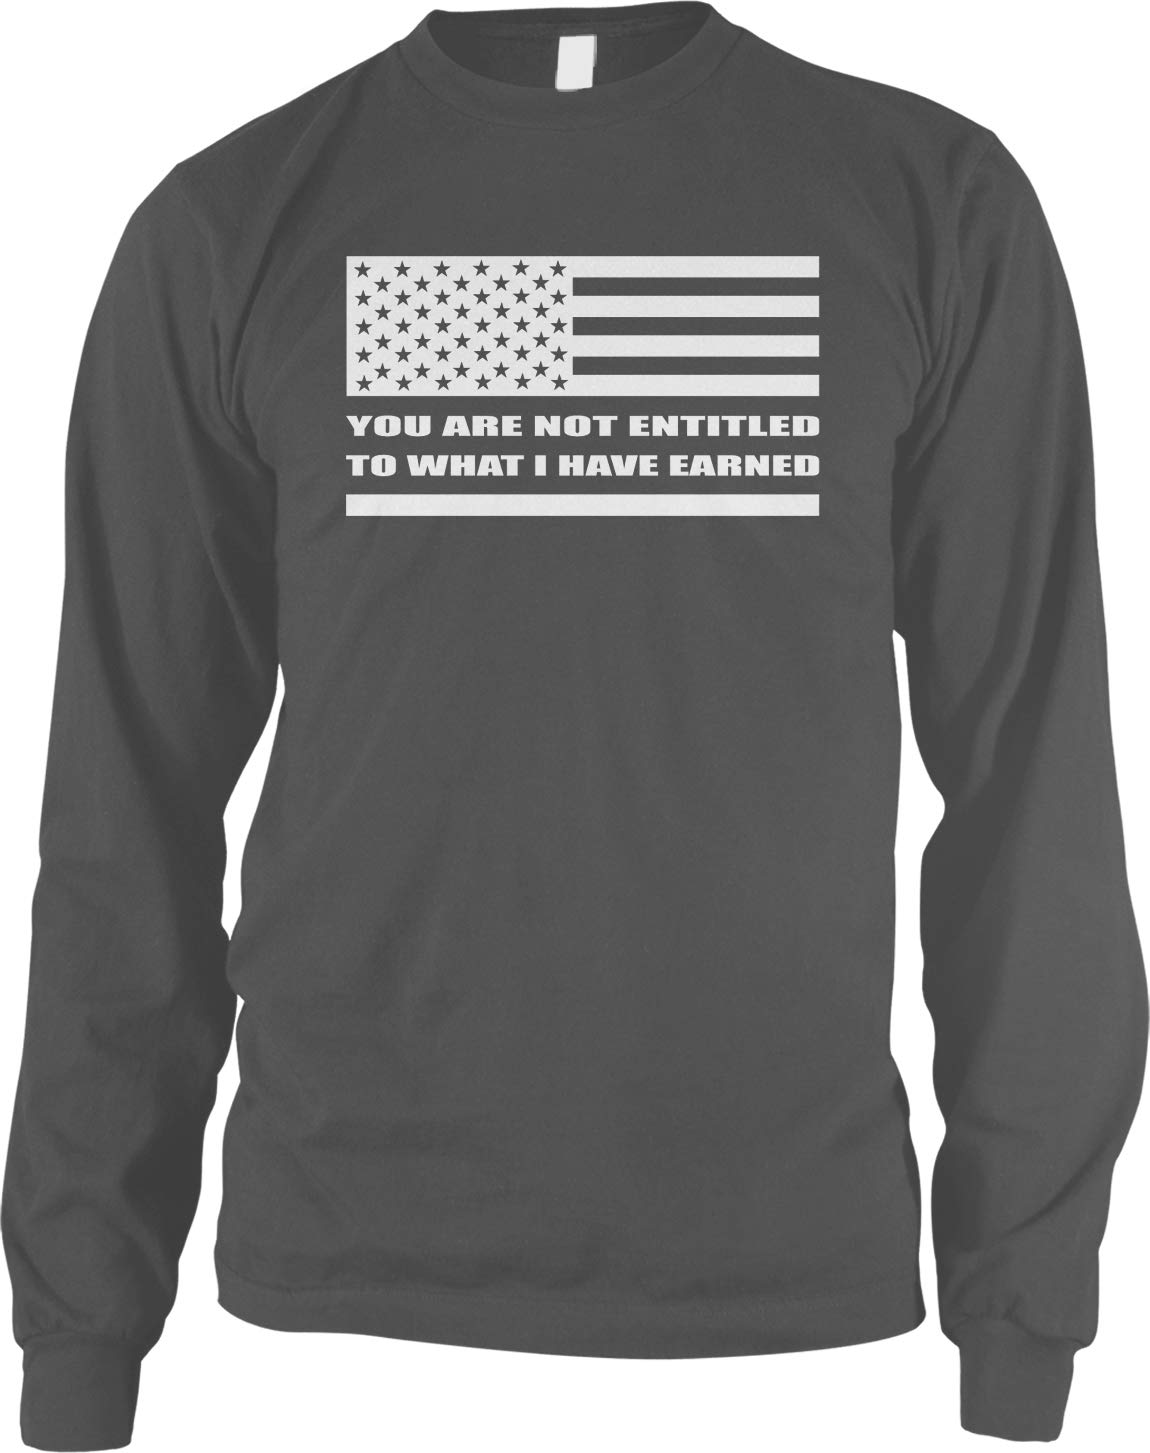 You Are Not Entitled To What I Have Earned Shirt 7146